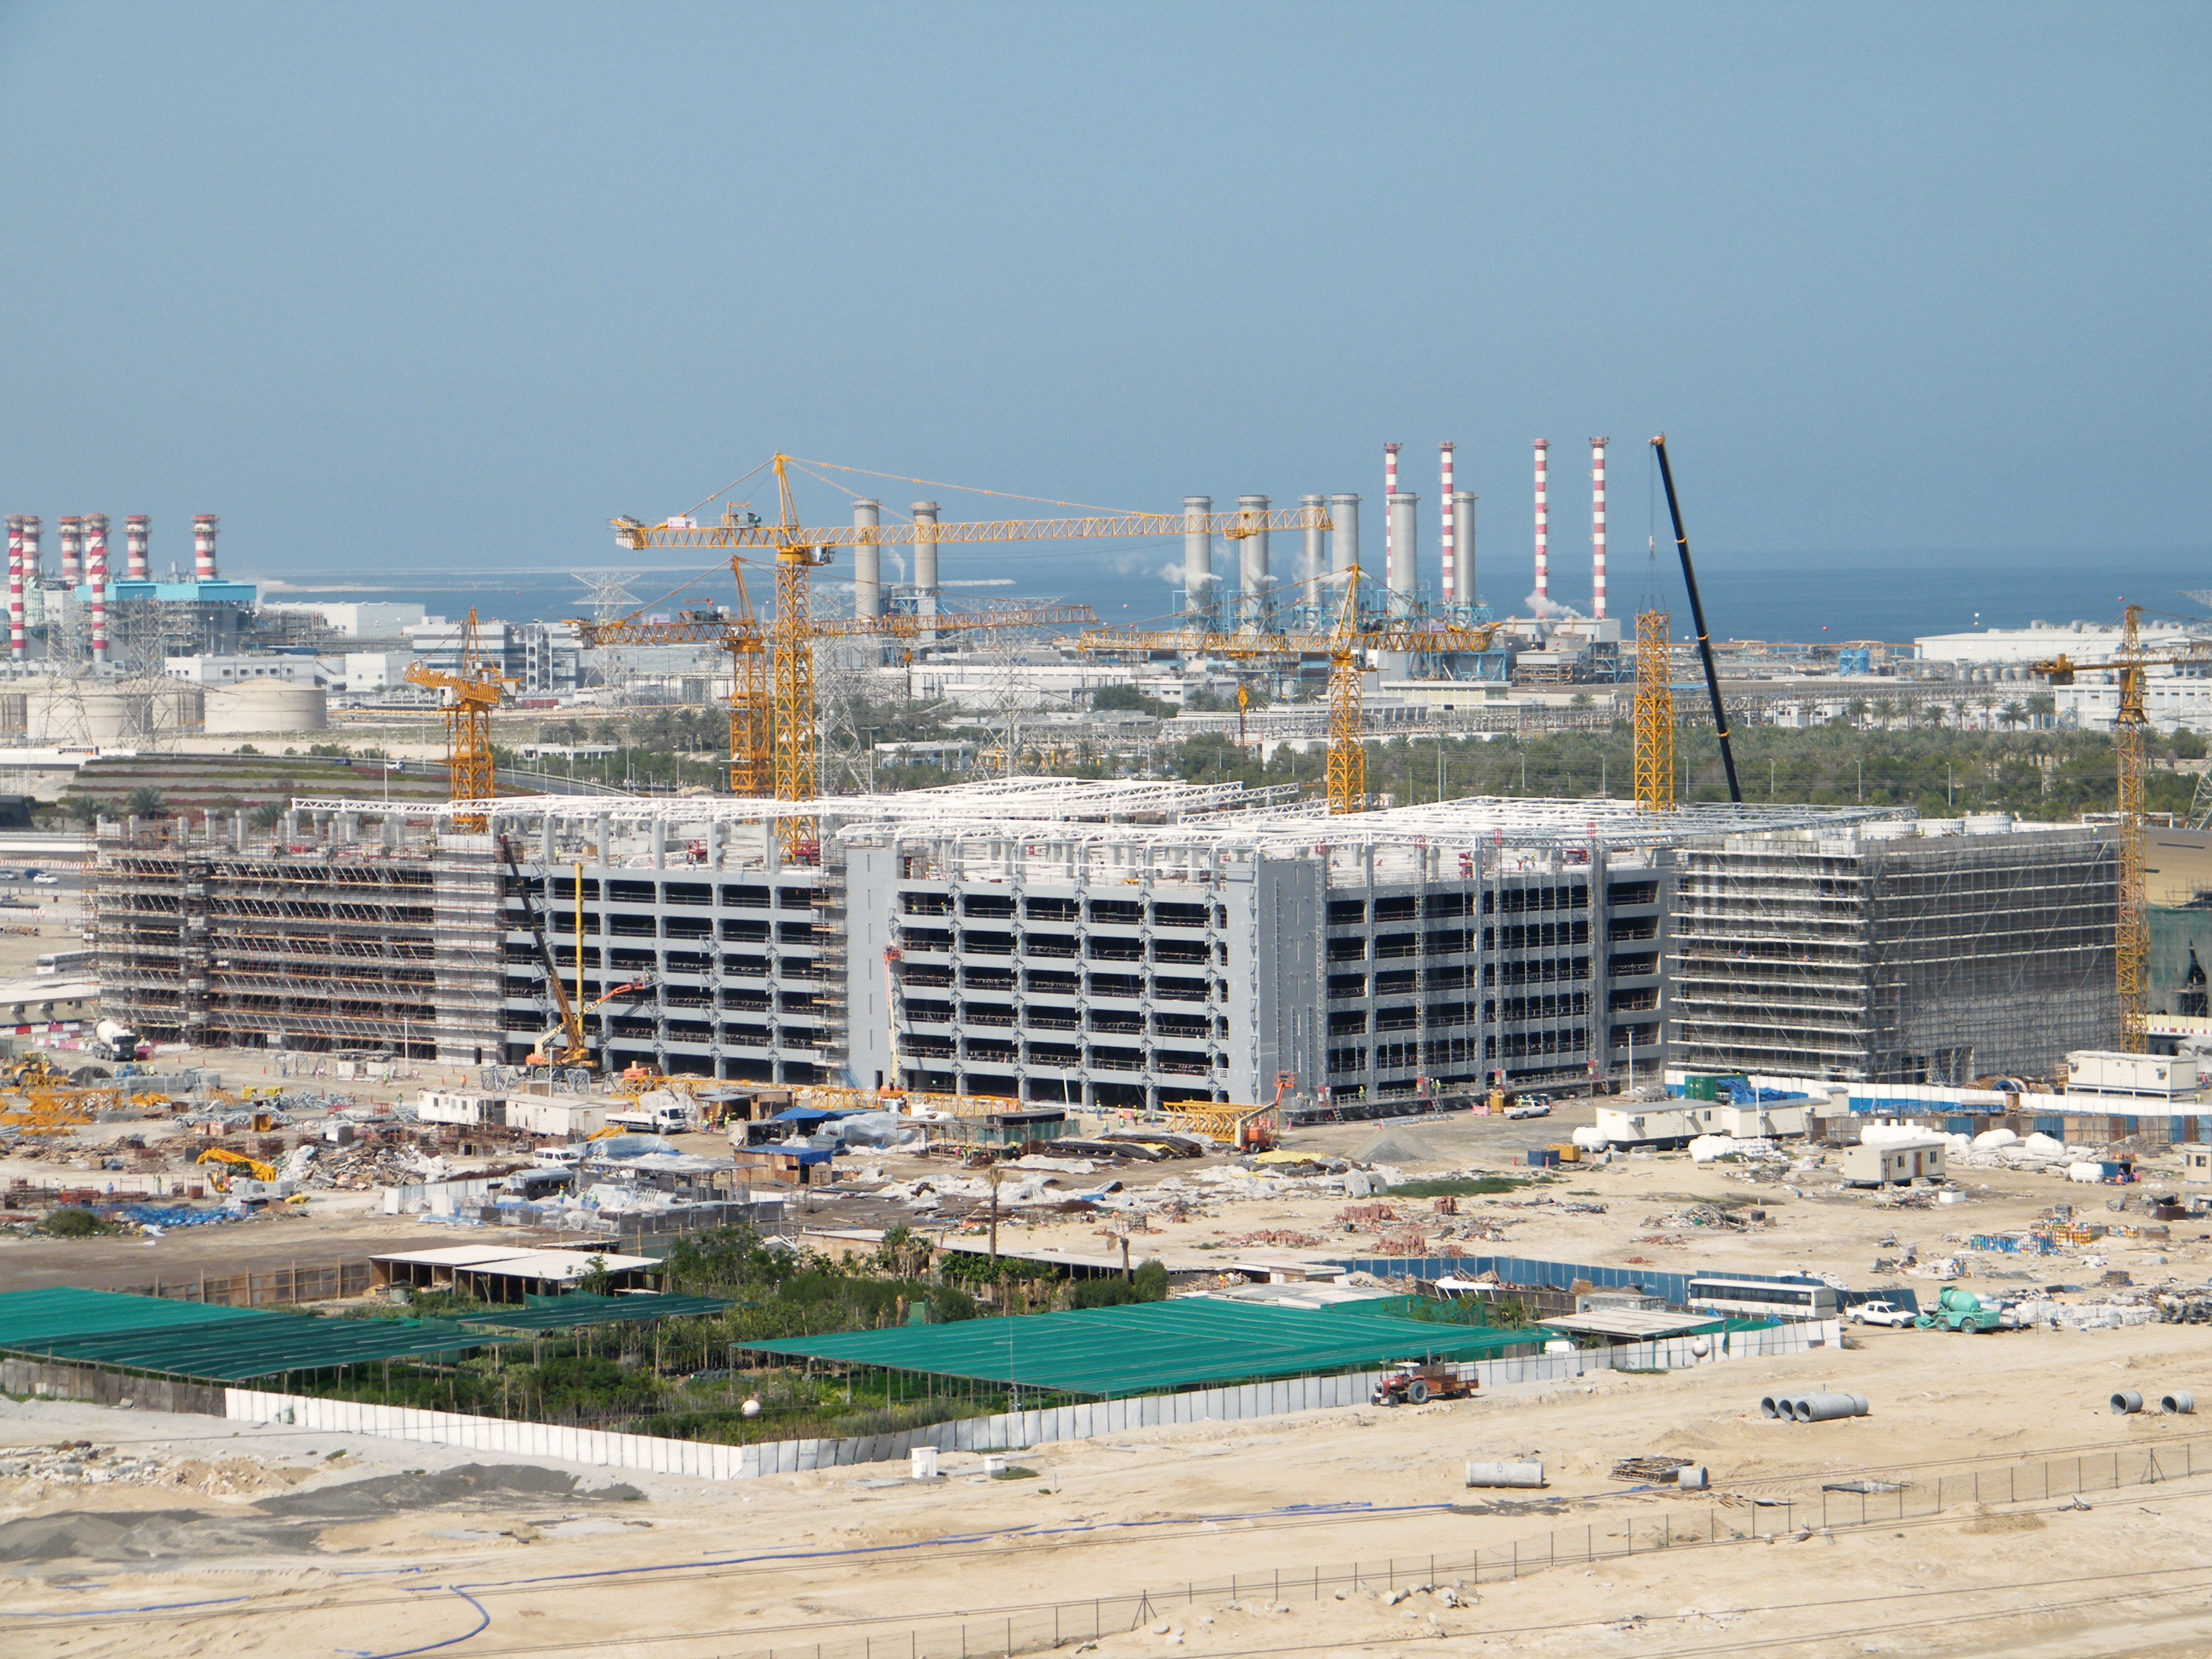 Nakheel Harbour Metro Car Park